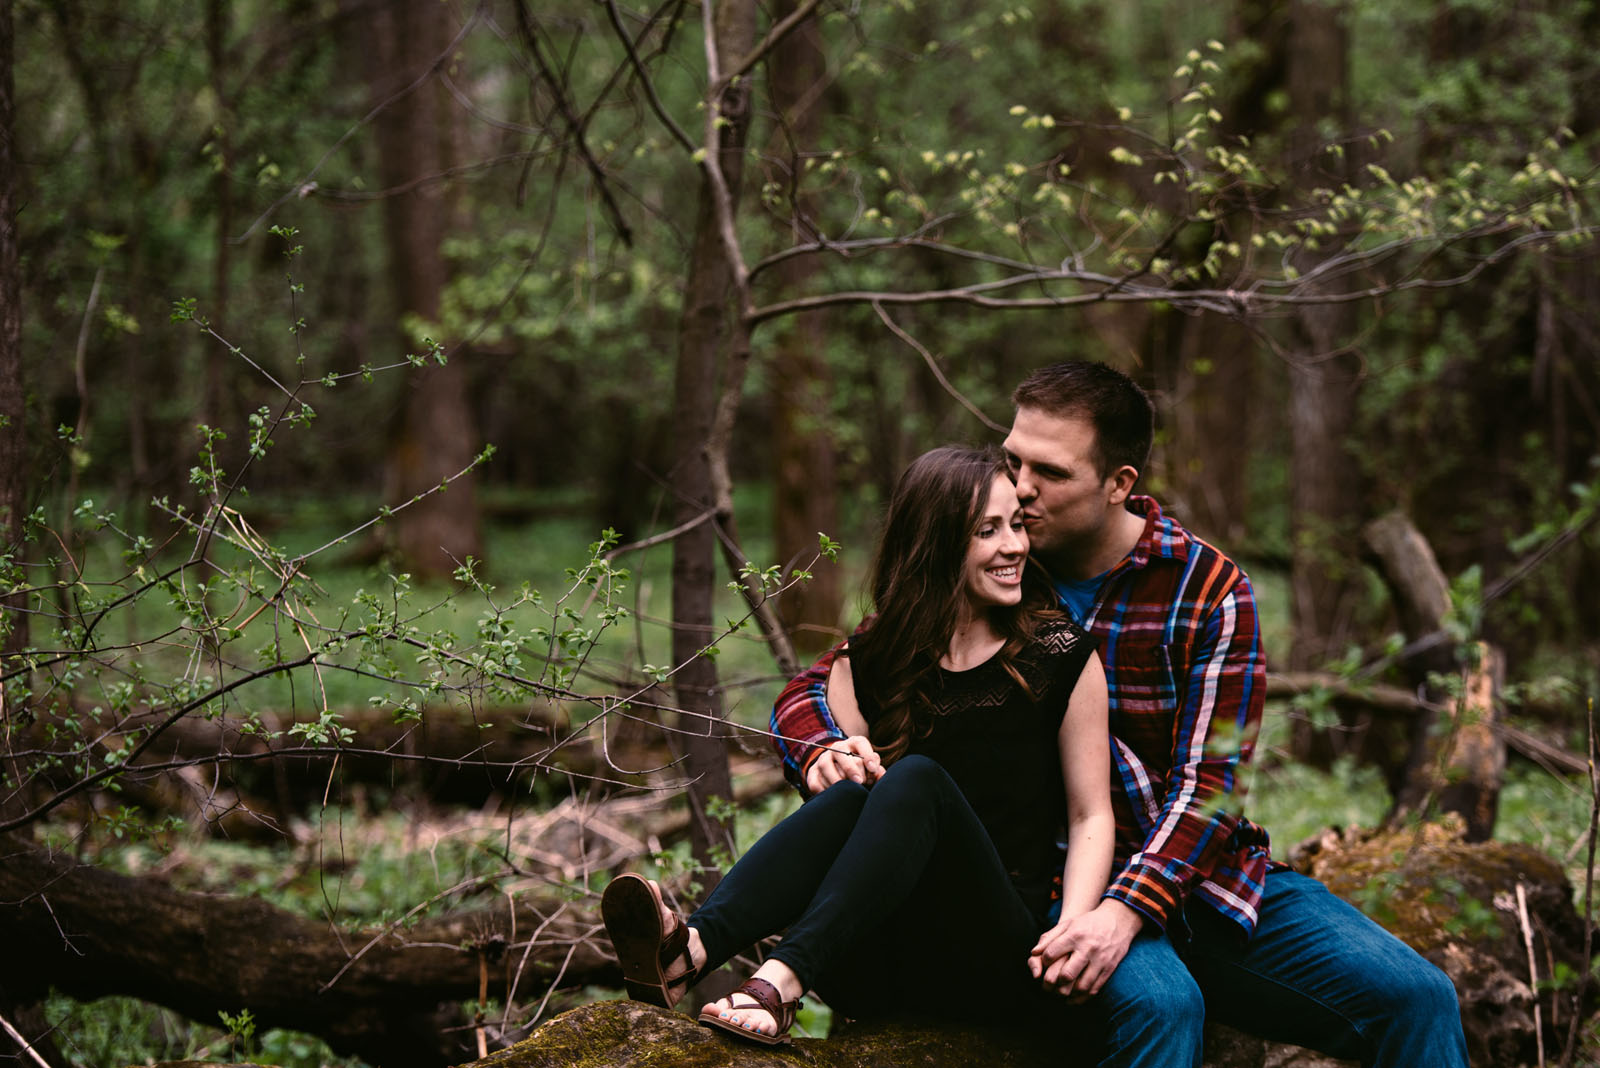 engagement-photography-minnesota-woods.jpg